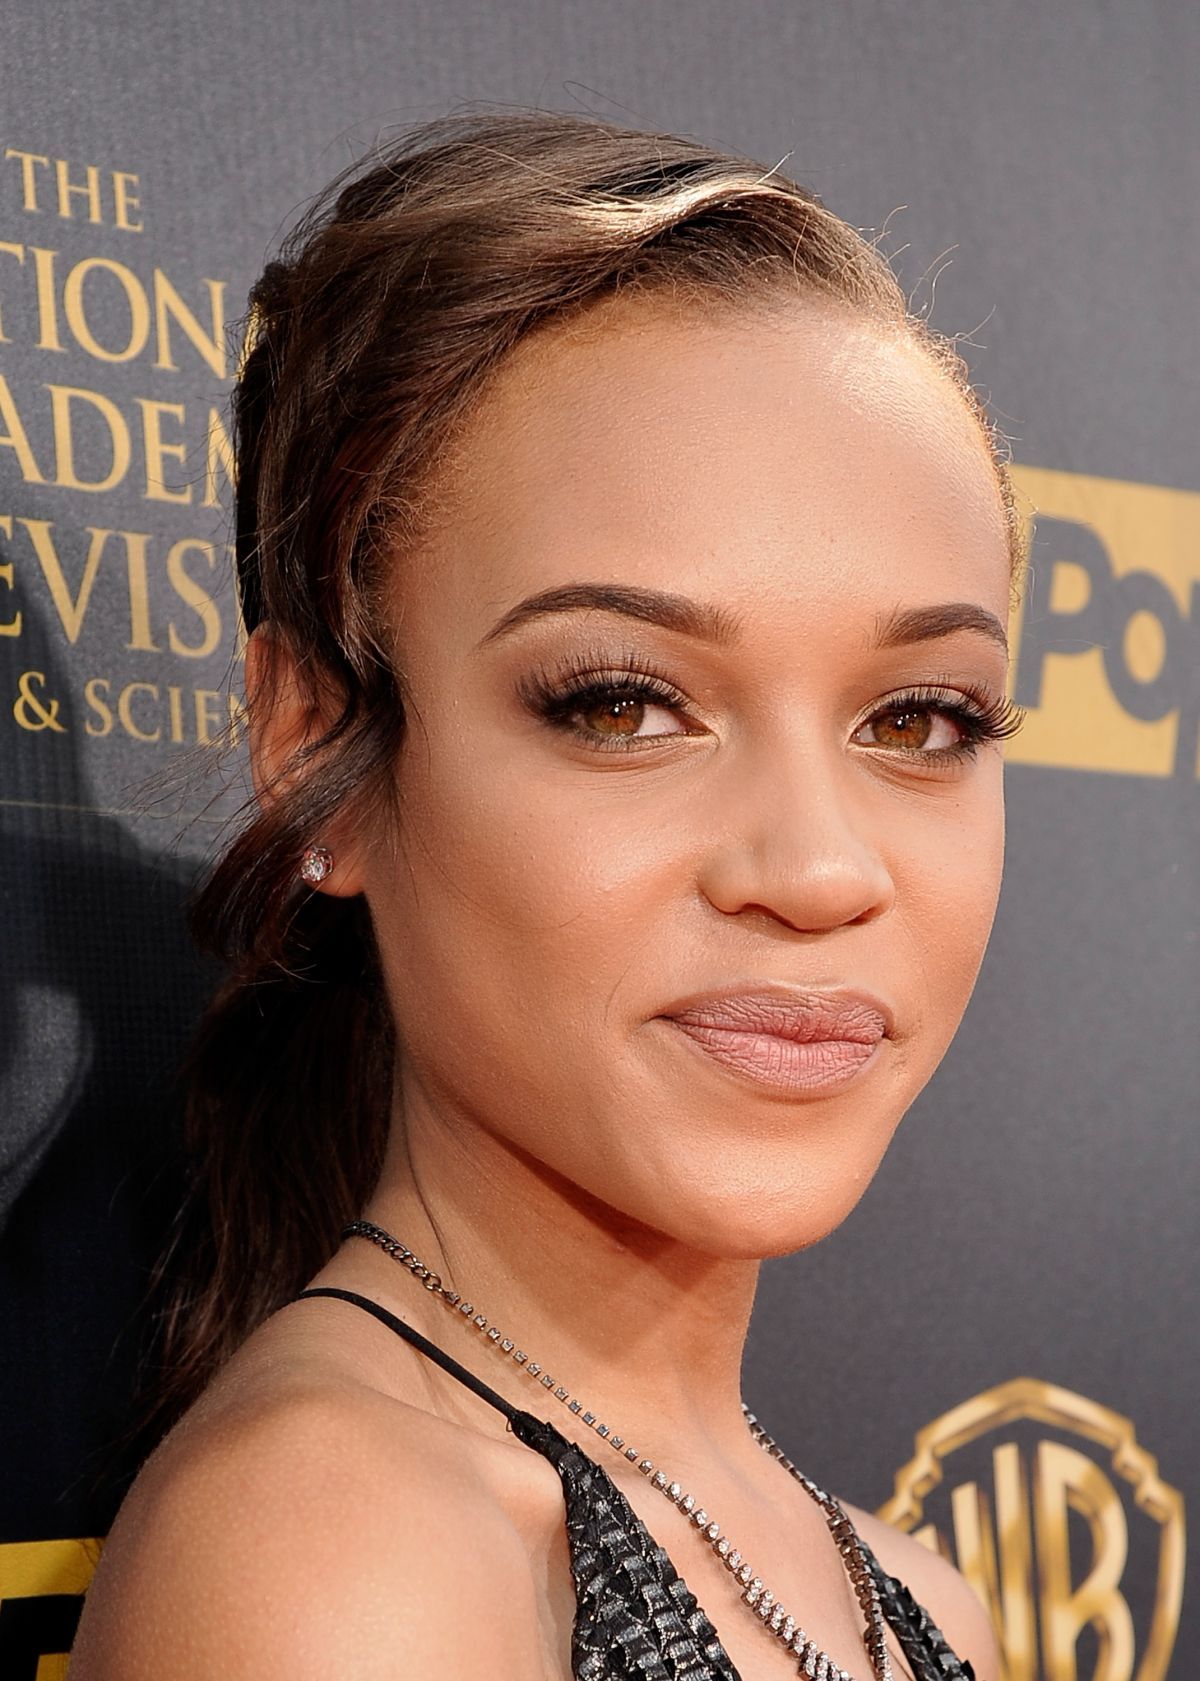 REIGN EDWARDS at 2015 Daytime Emmy Awards in Burbank